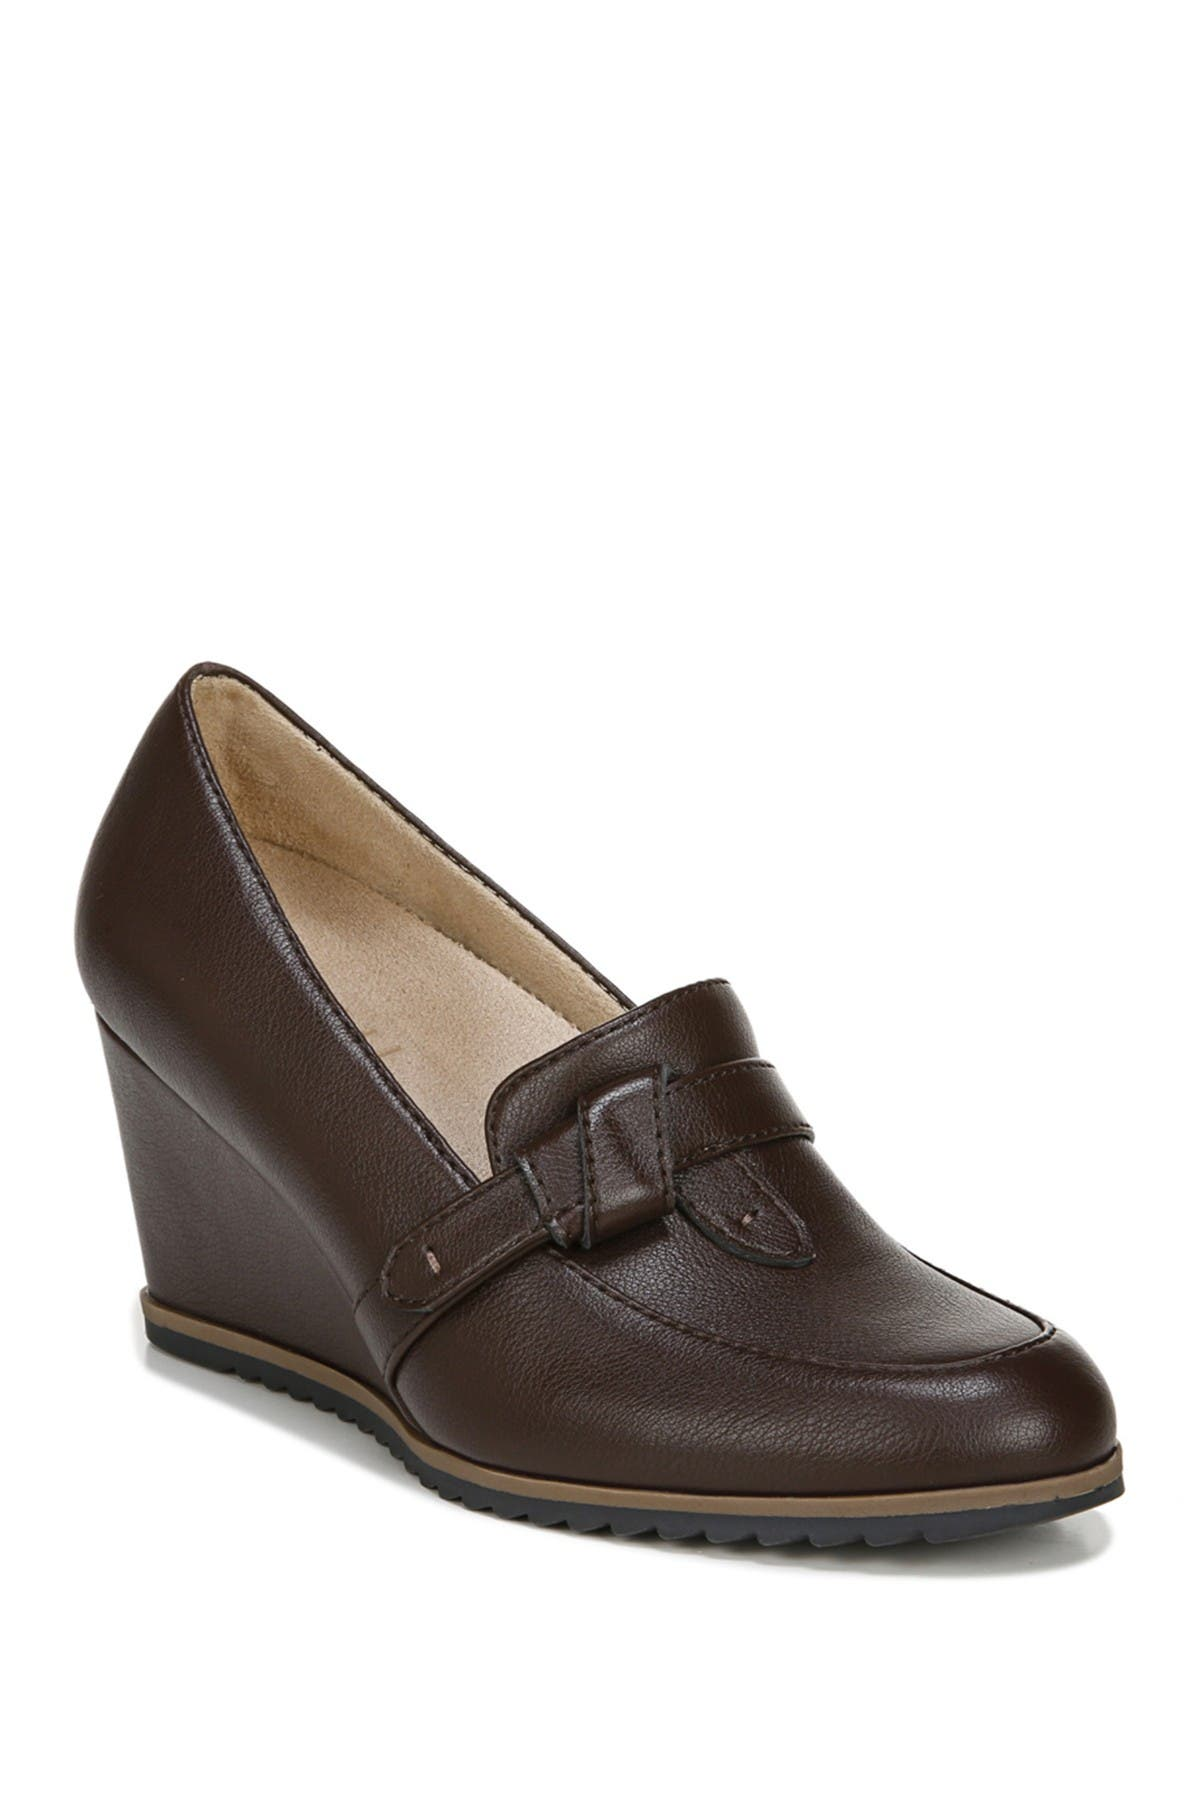 Image of SOUL Naturalizer Hila Wedge Loafer - Wide Width Available